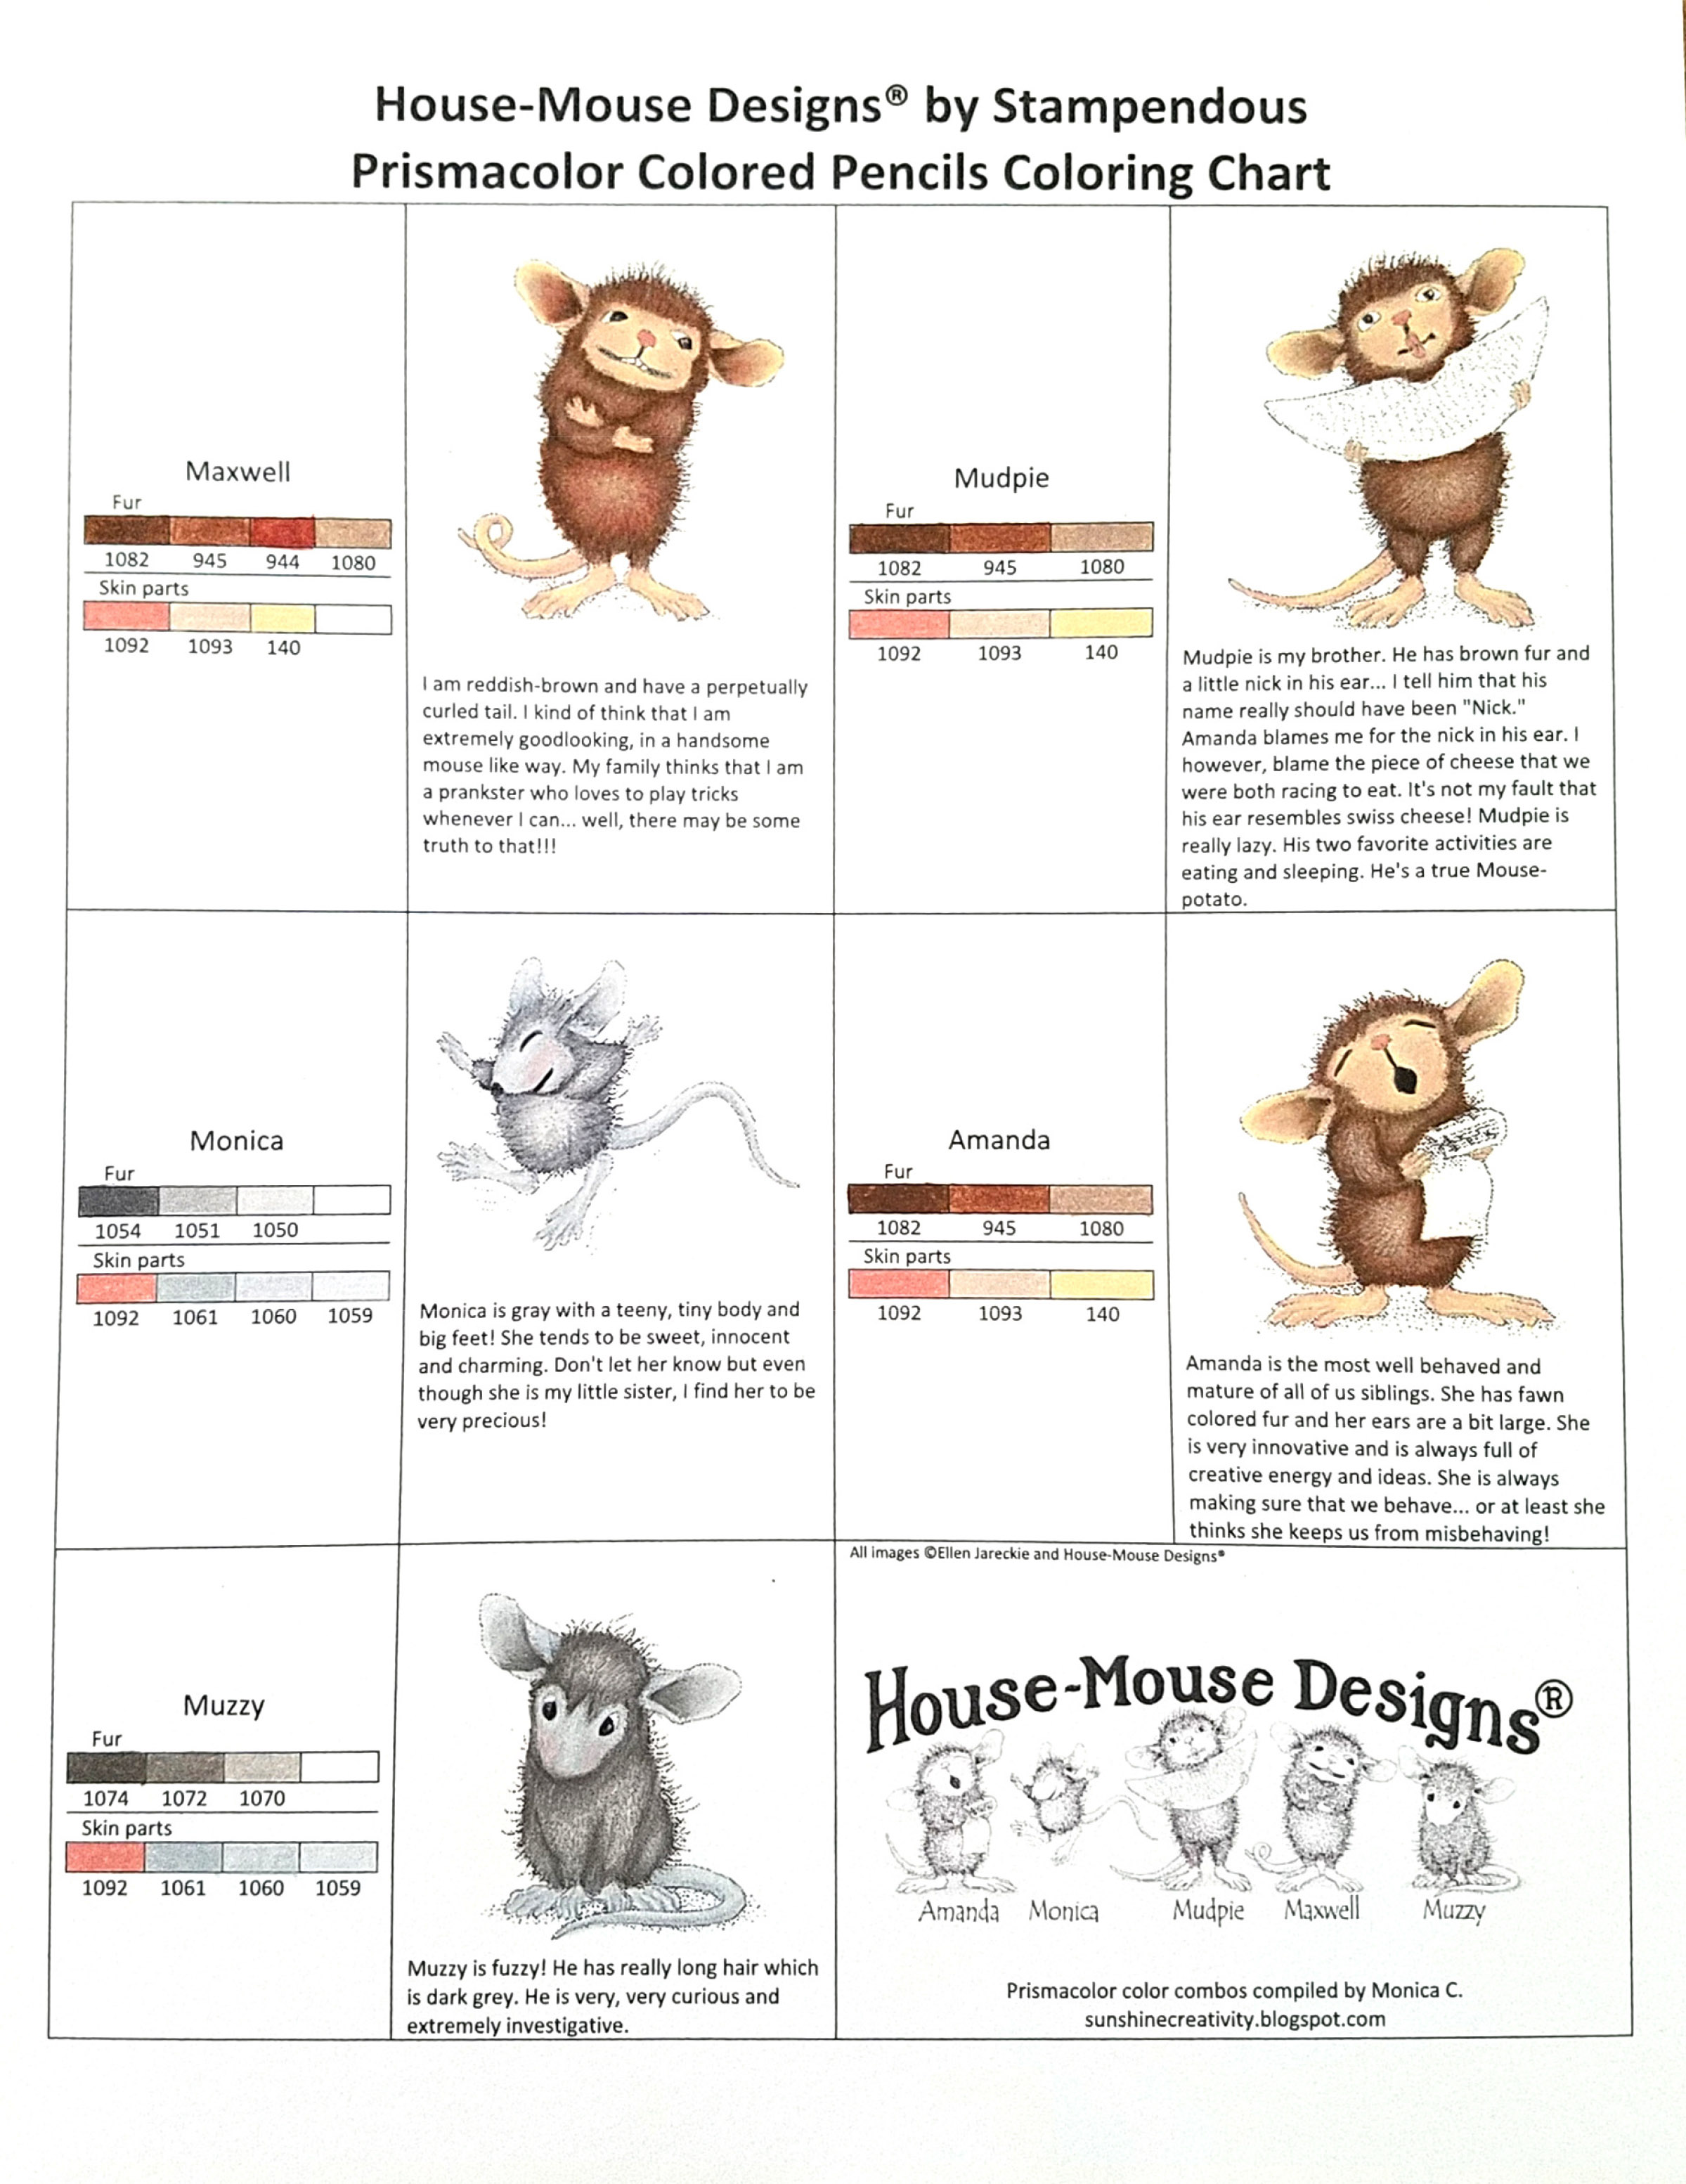 House-Mouse Designs Coloring Chart Prismacolor Color Pencils colored by Monica C